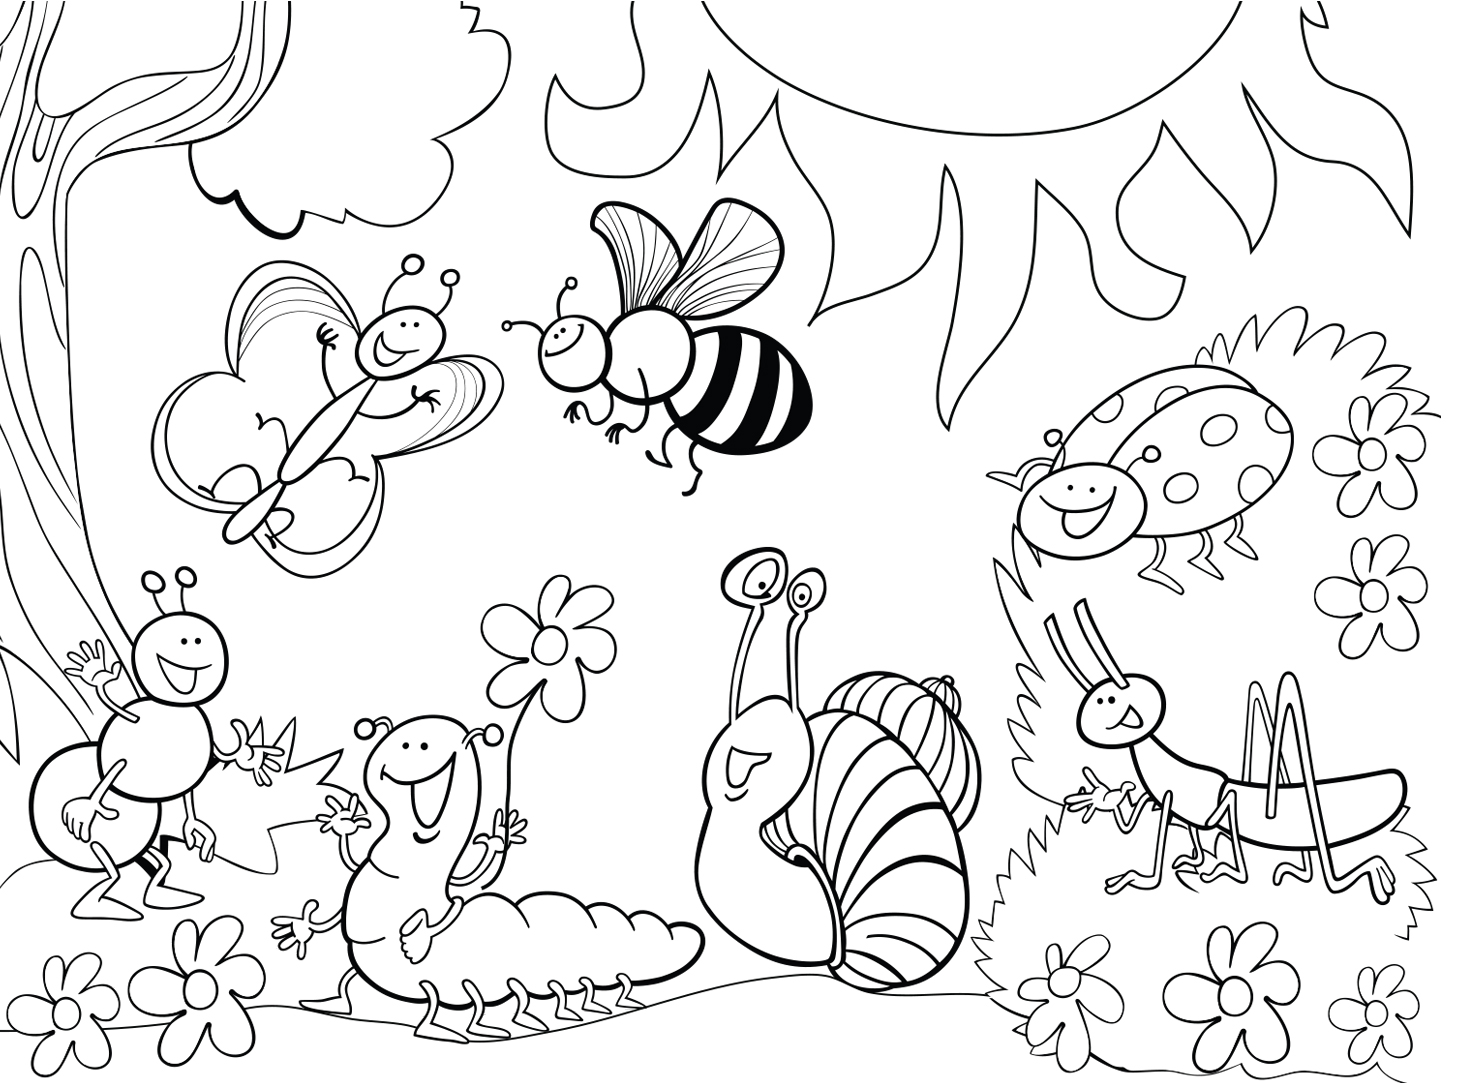 colouring pages garden lil gardeners greenstreet gardens premier maryland garden colouring pages